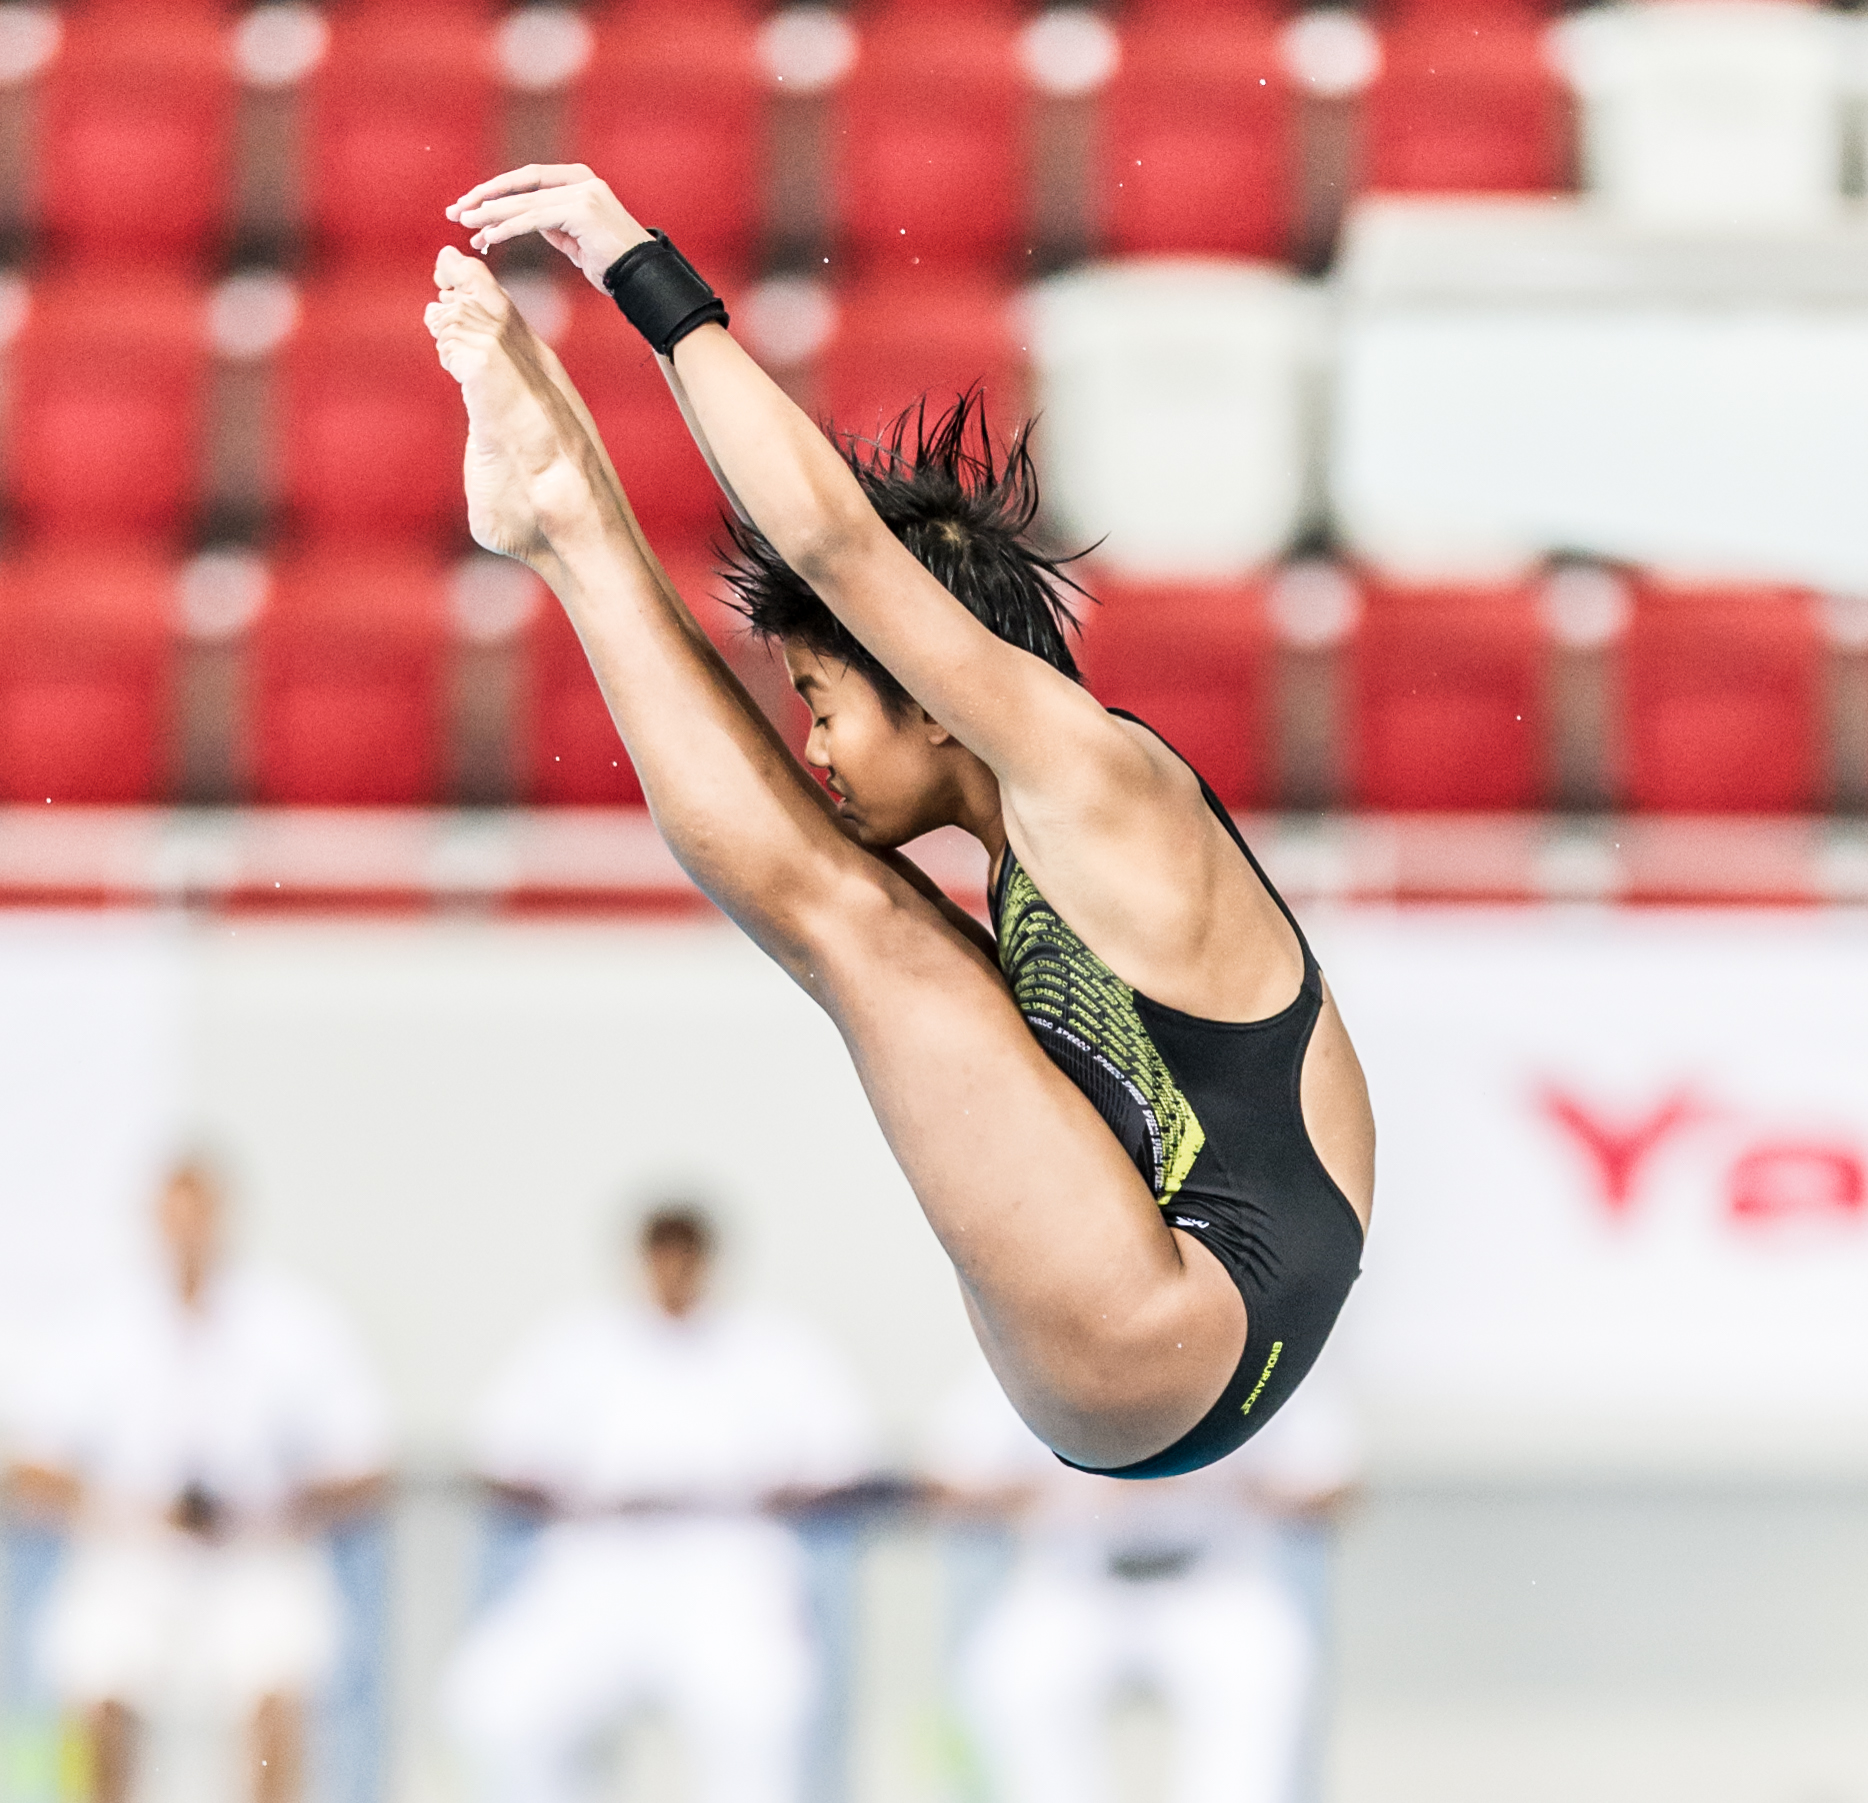 A diver rotates in the air during the Singapore National Diving Championships at the OCBC Aquatic Centre.